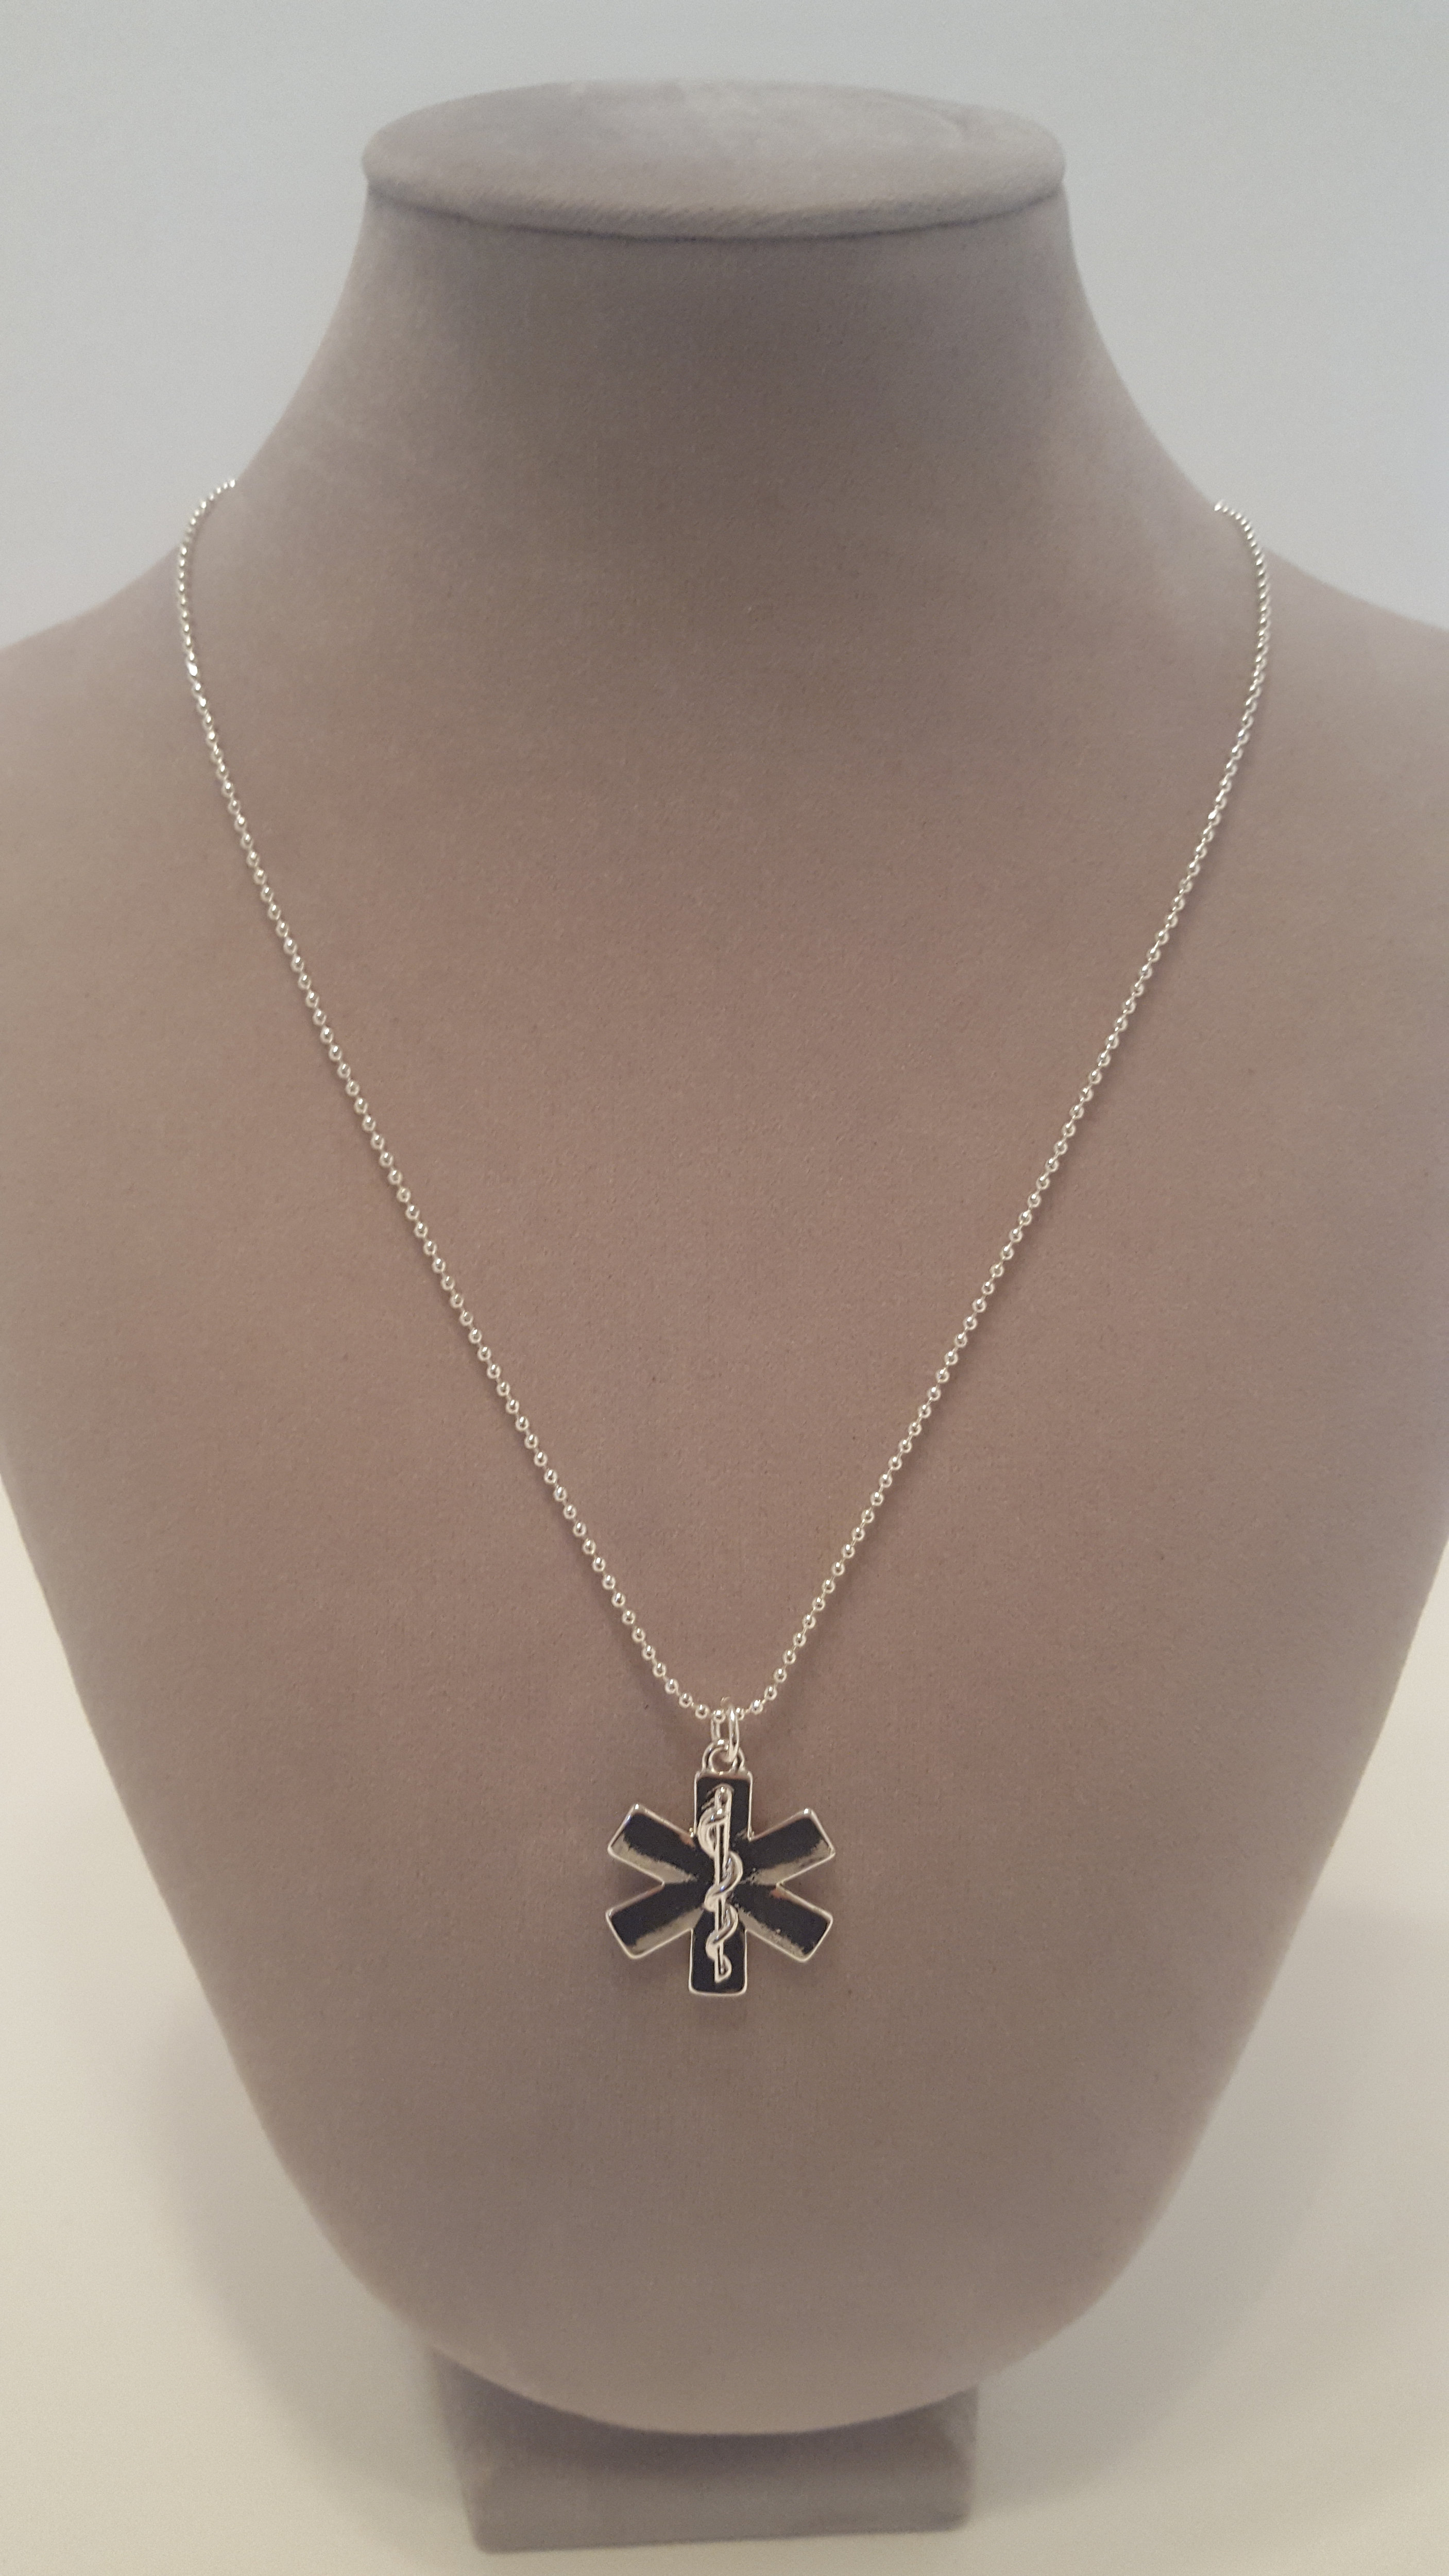 Hometown heroes jewelry star of life pendant necklace with ball chain star of life necklace with ball chain 18 inch chain charm measures 78 available in silver gold and rose gold aloadofball Image collections